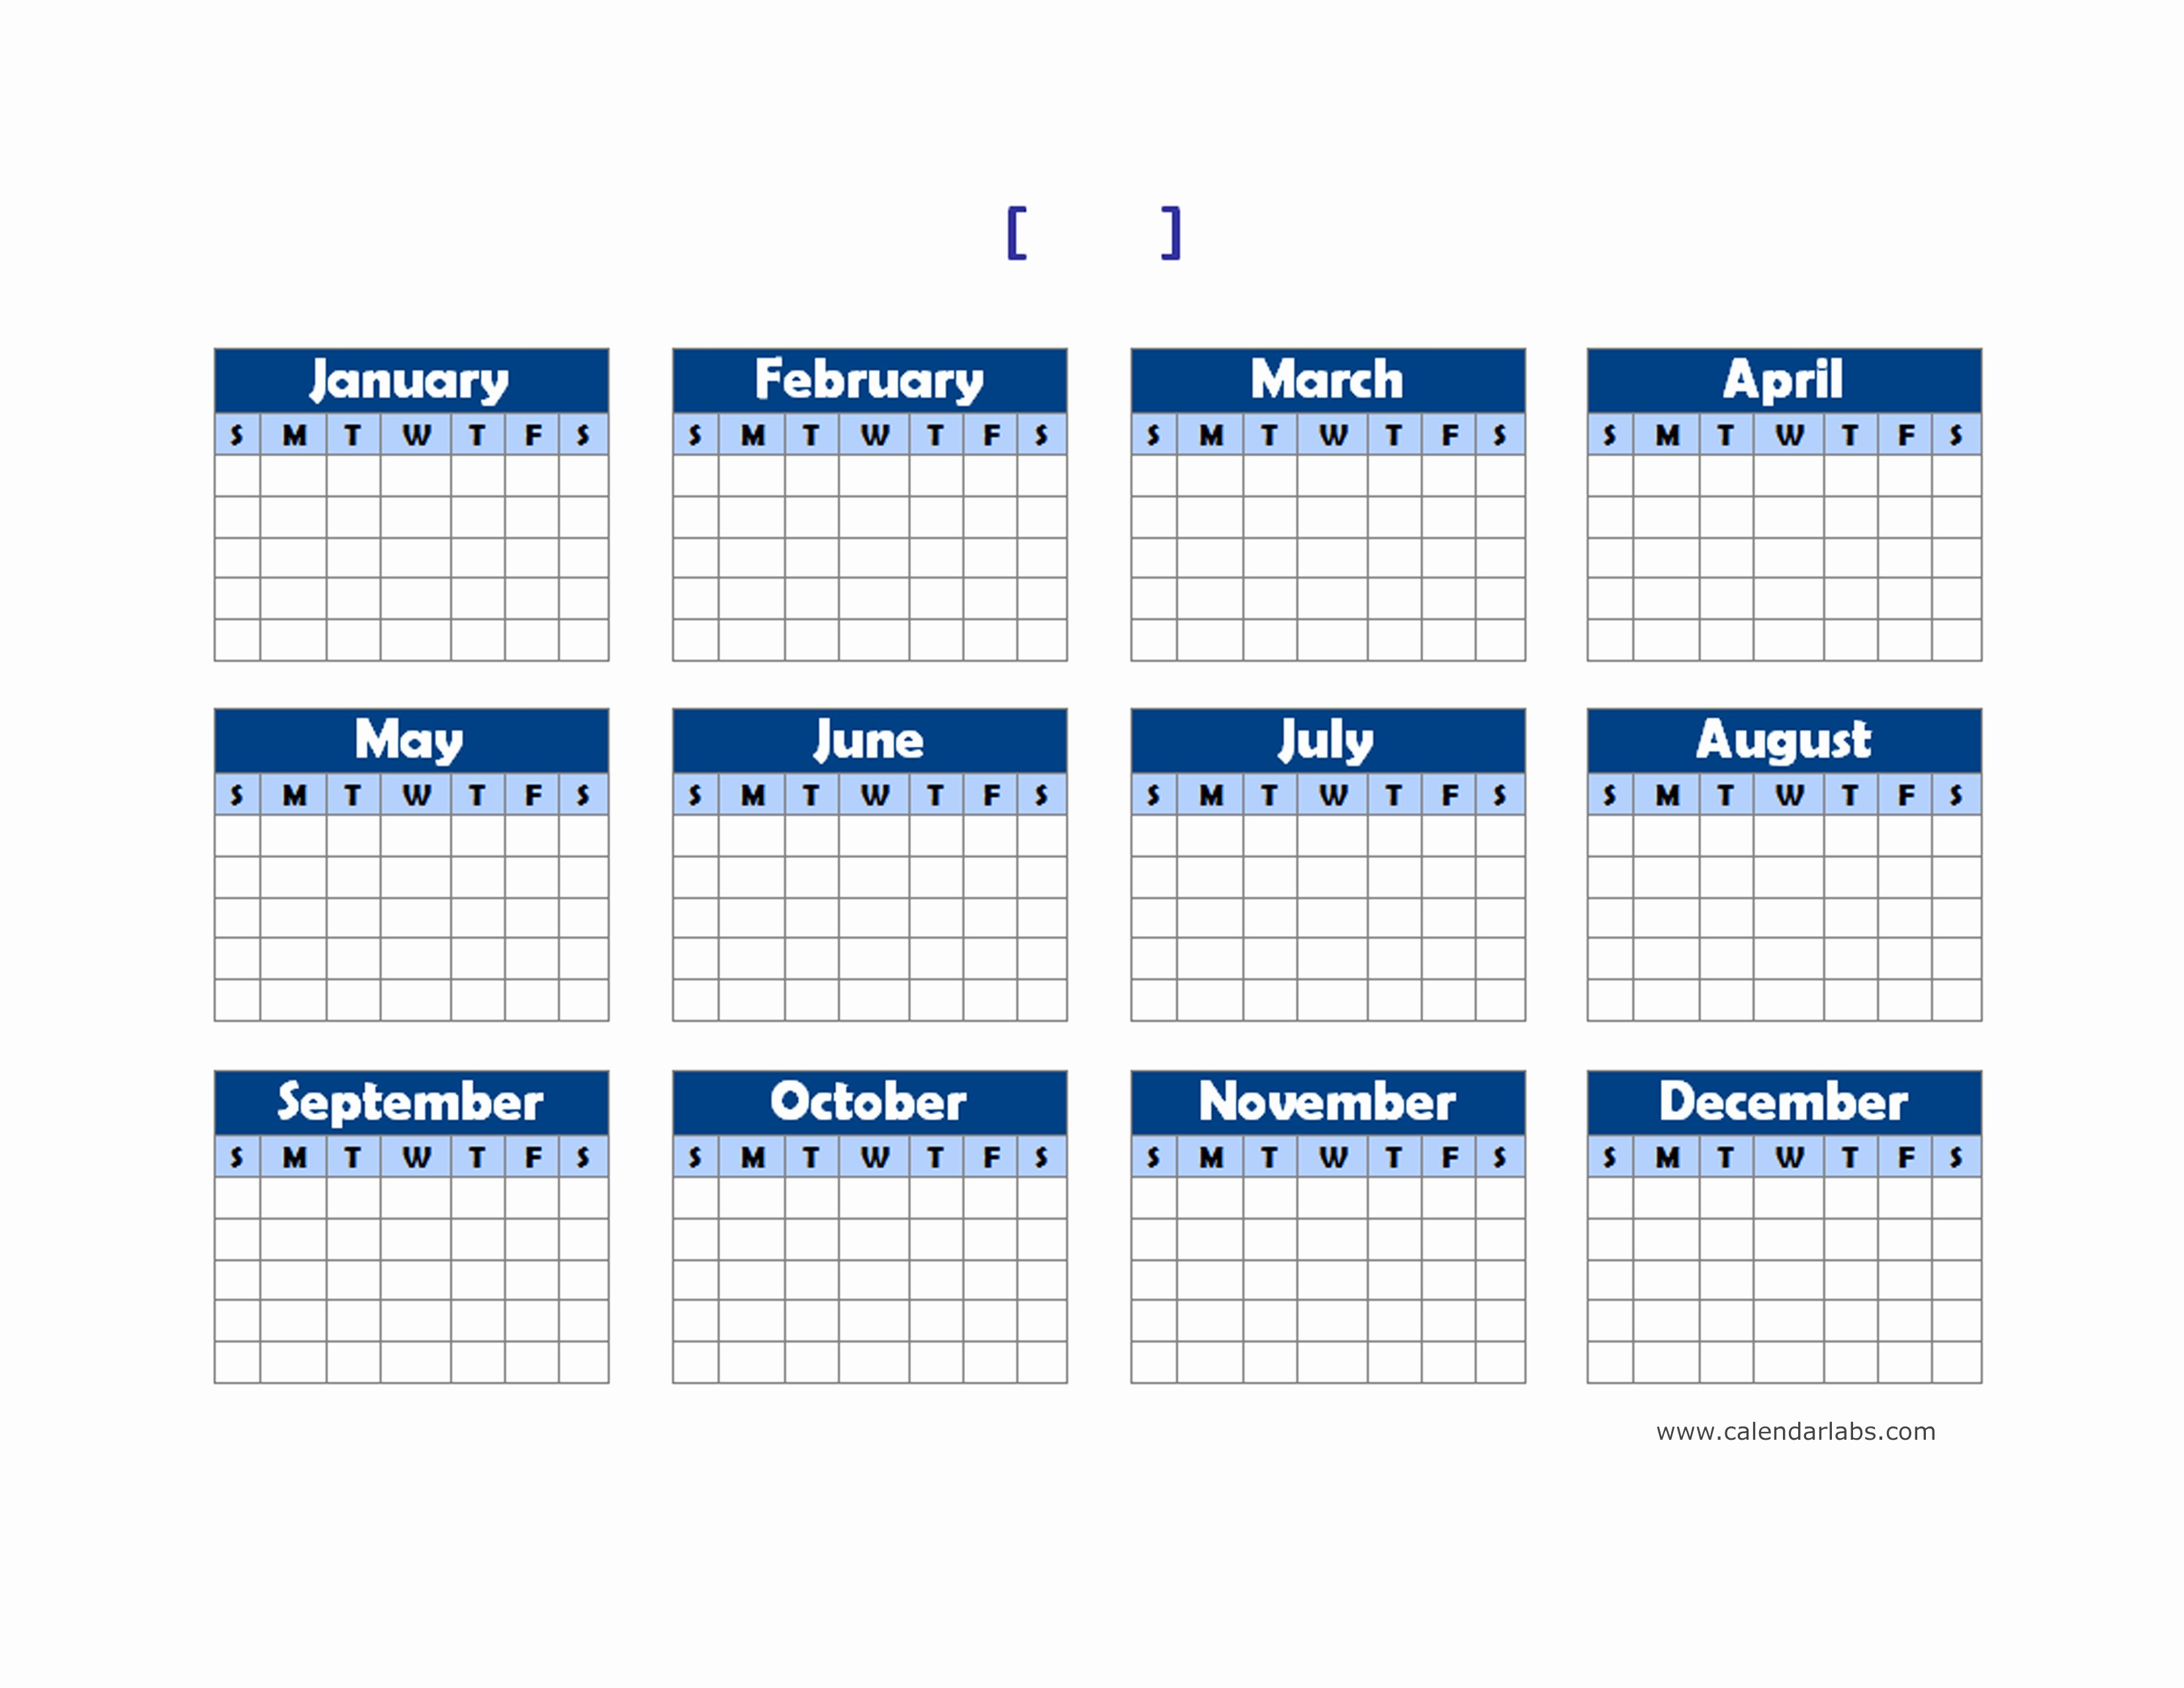 2015 Yearly Calendar Printable Landscape Best Of Yearly Blank Calendar Landscape Free Printable Templates